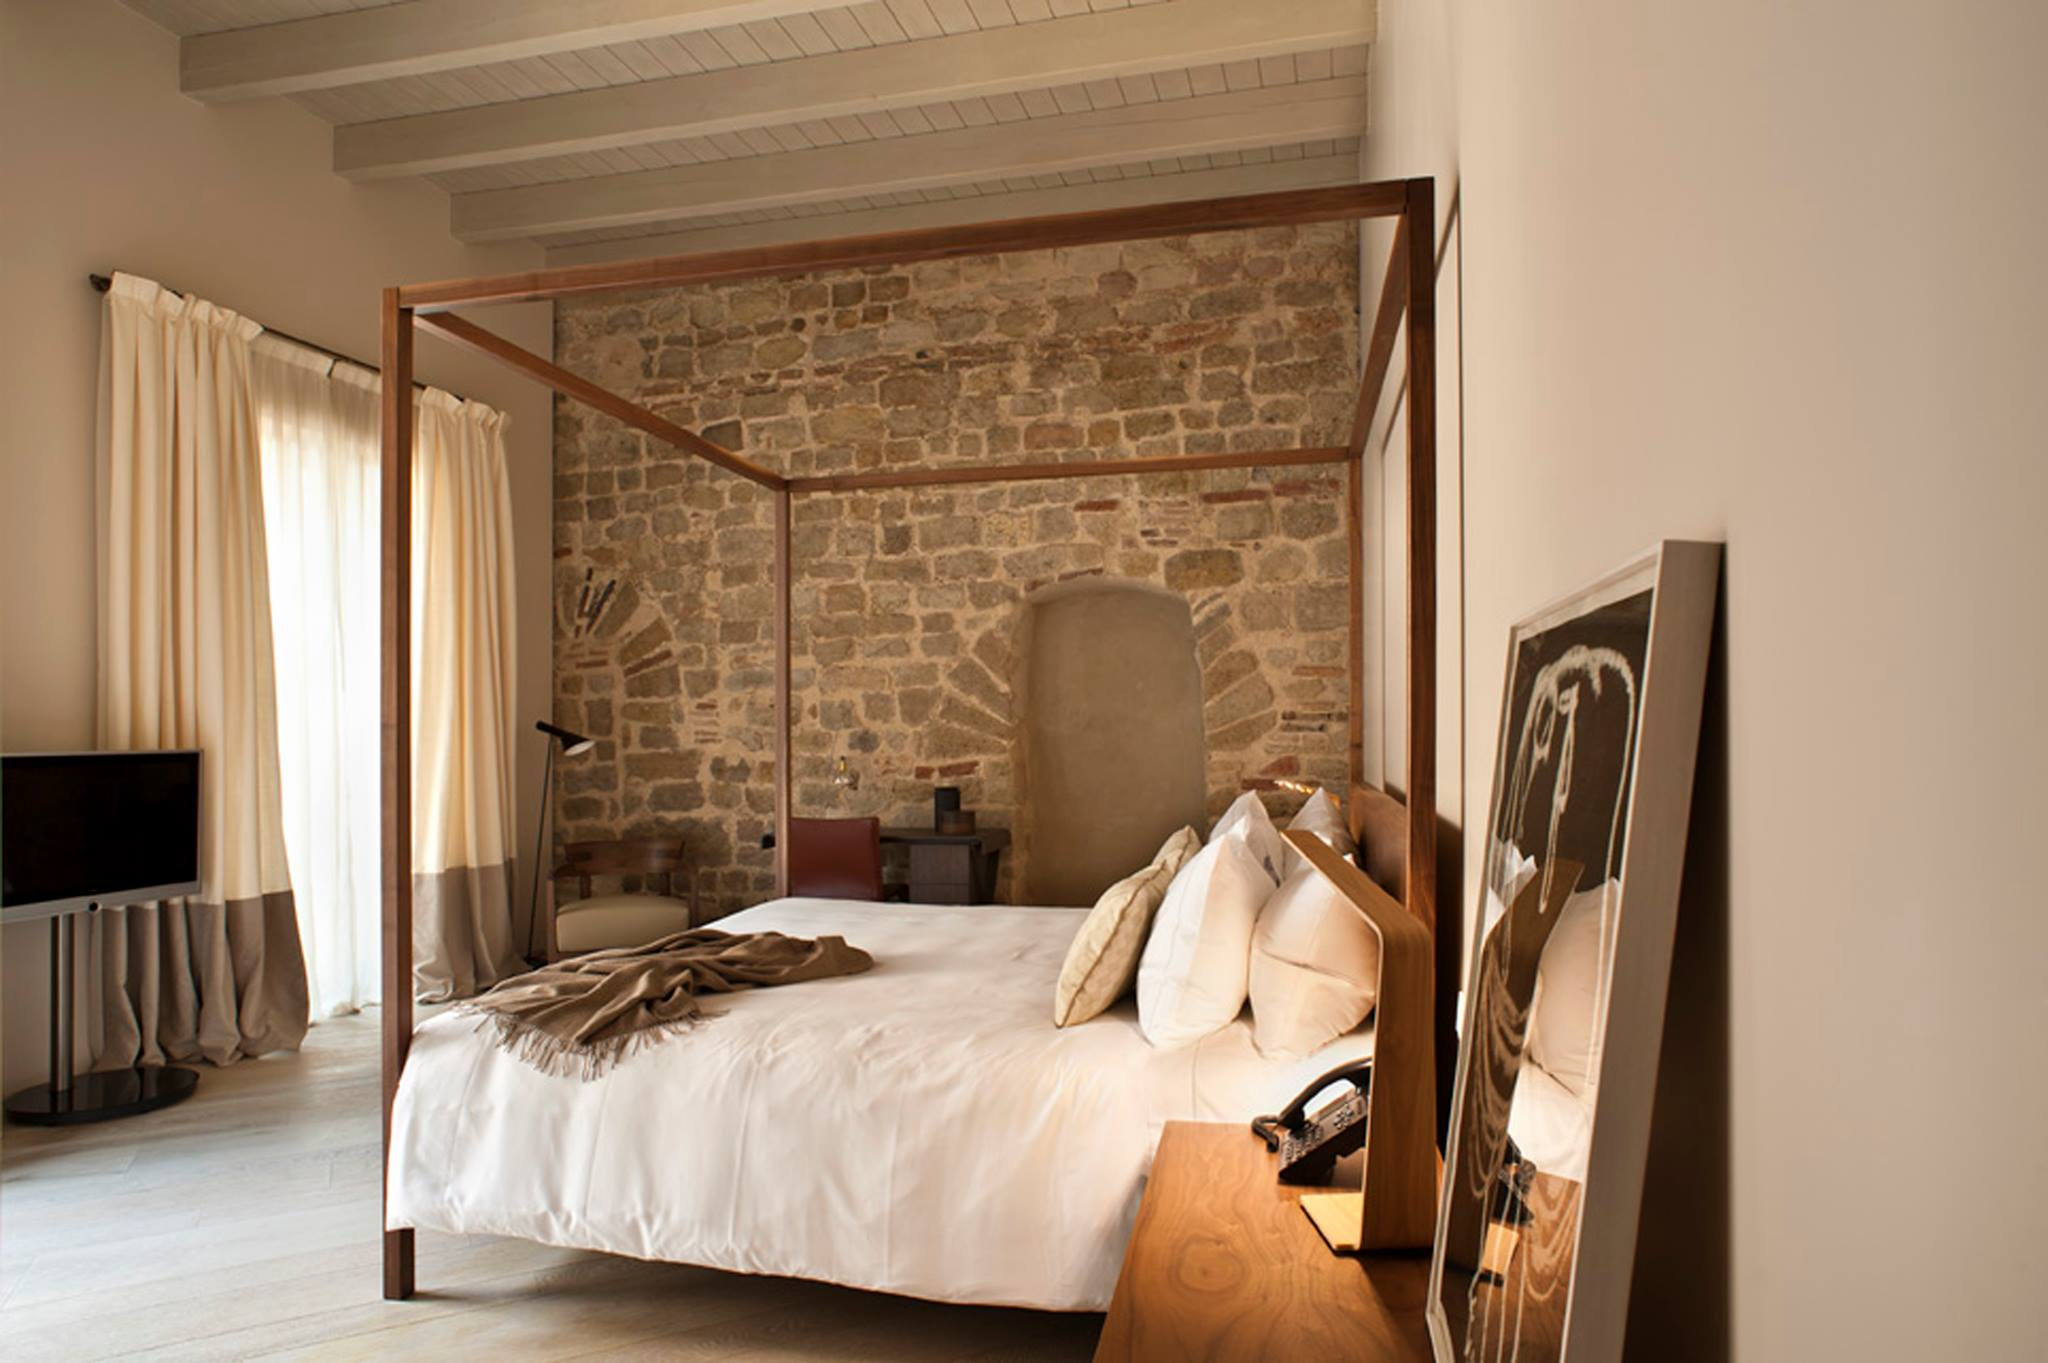 Mercer Hotel's historic rooms with old walls form one of the bedrooms of this boutique htoels in Barcelona bedroom